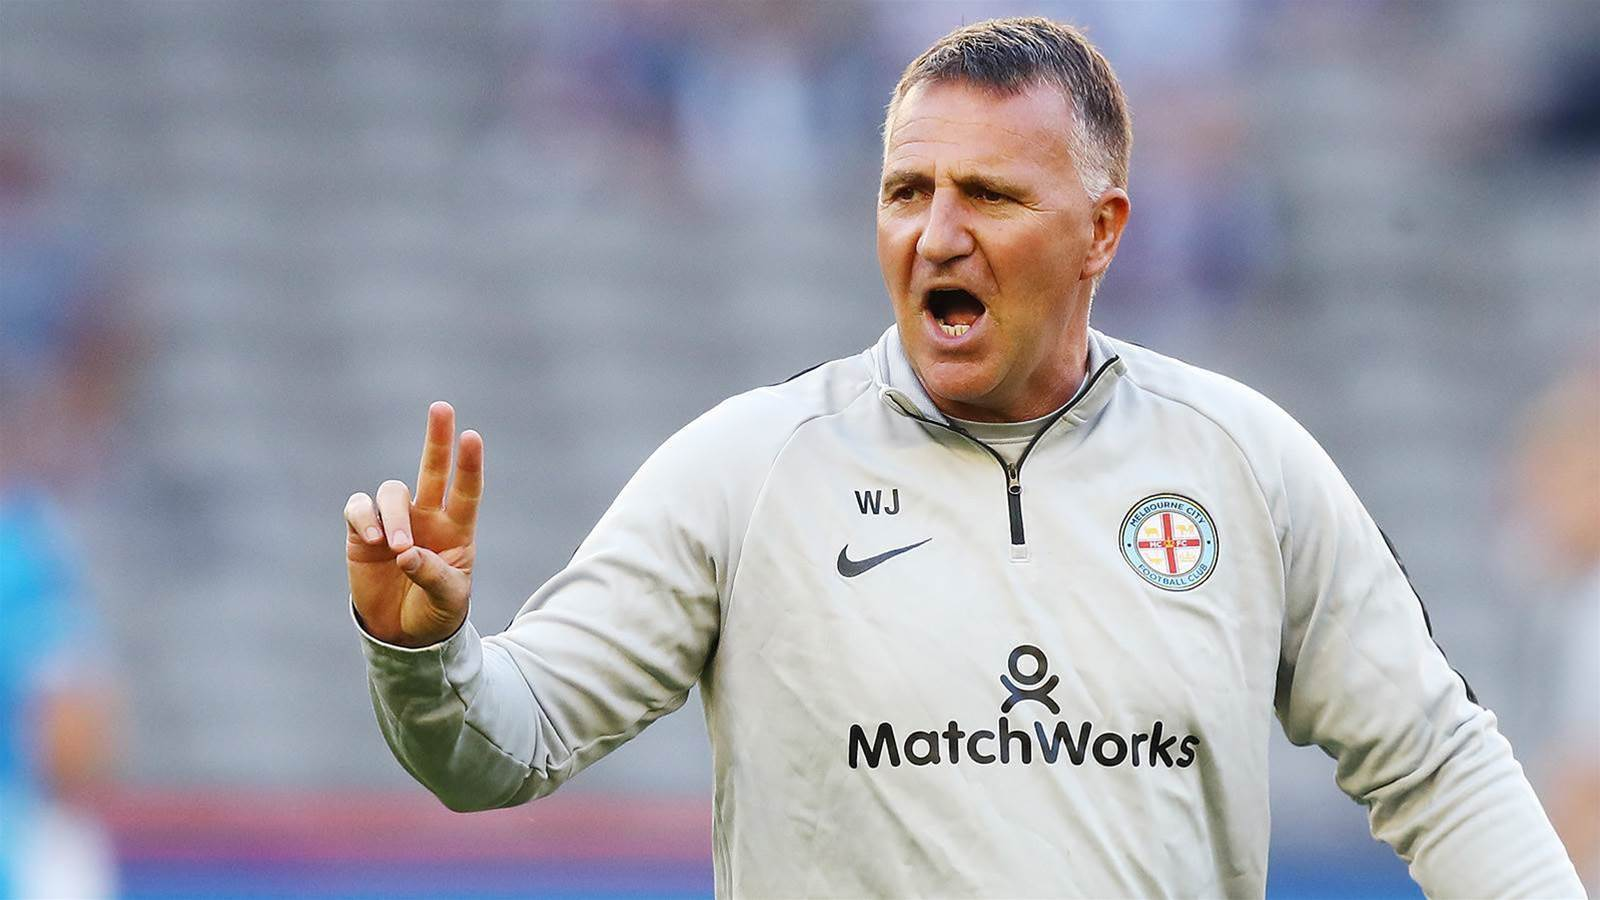 Adelaide could decide Joyce's future at City